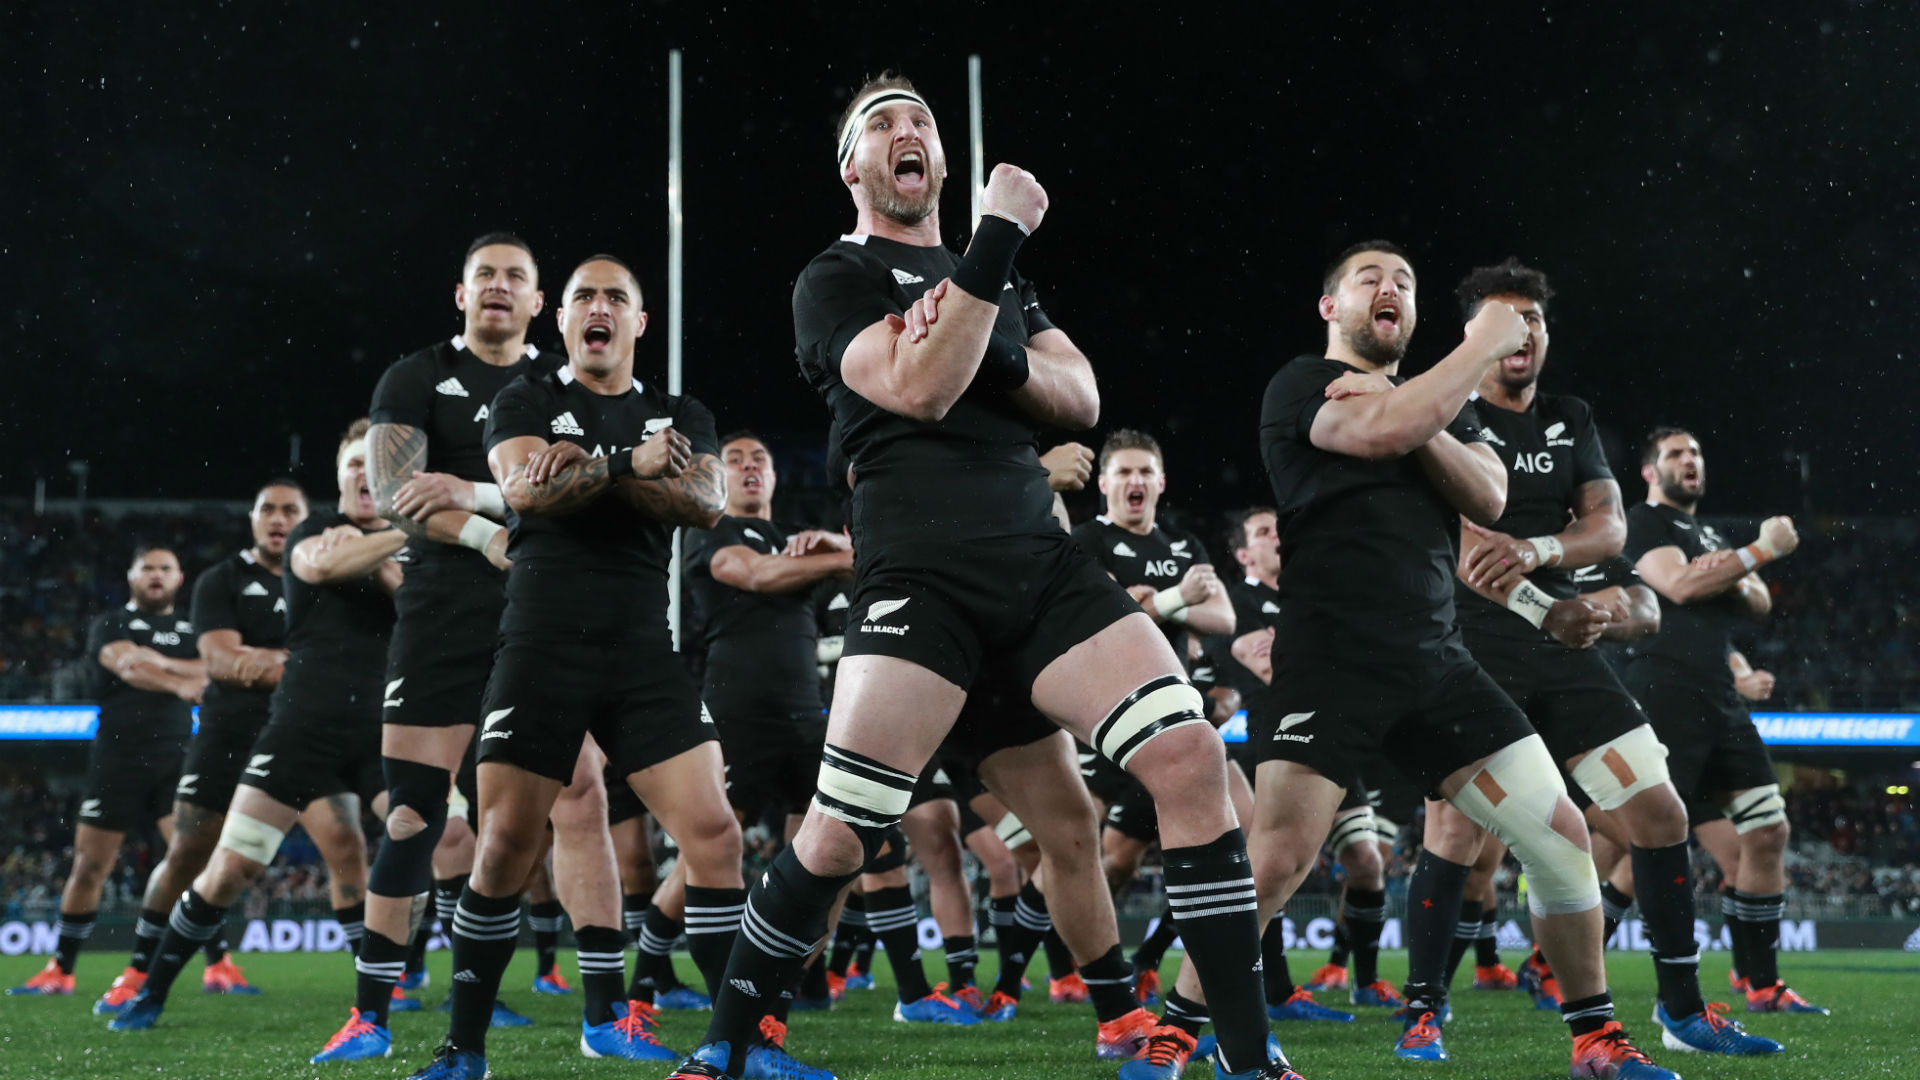 New Zealand perform the Haka before facing Australia